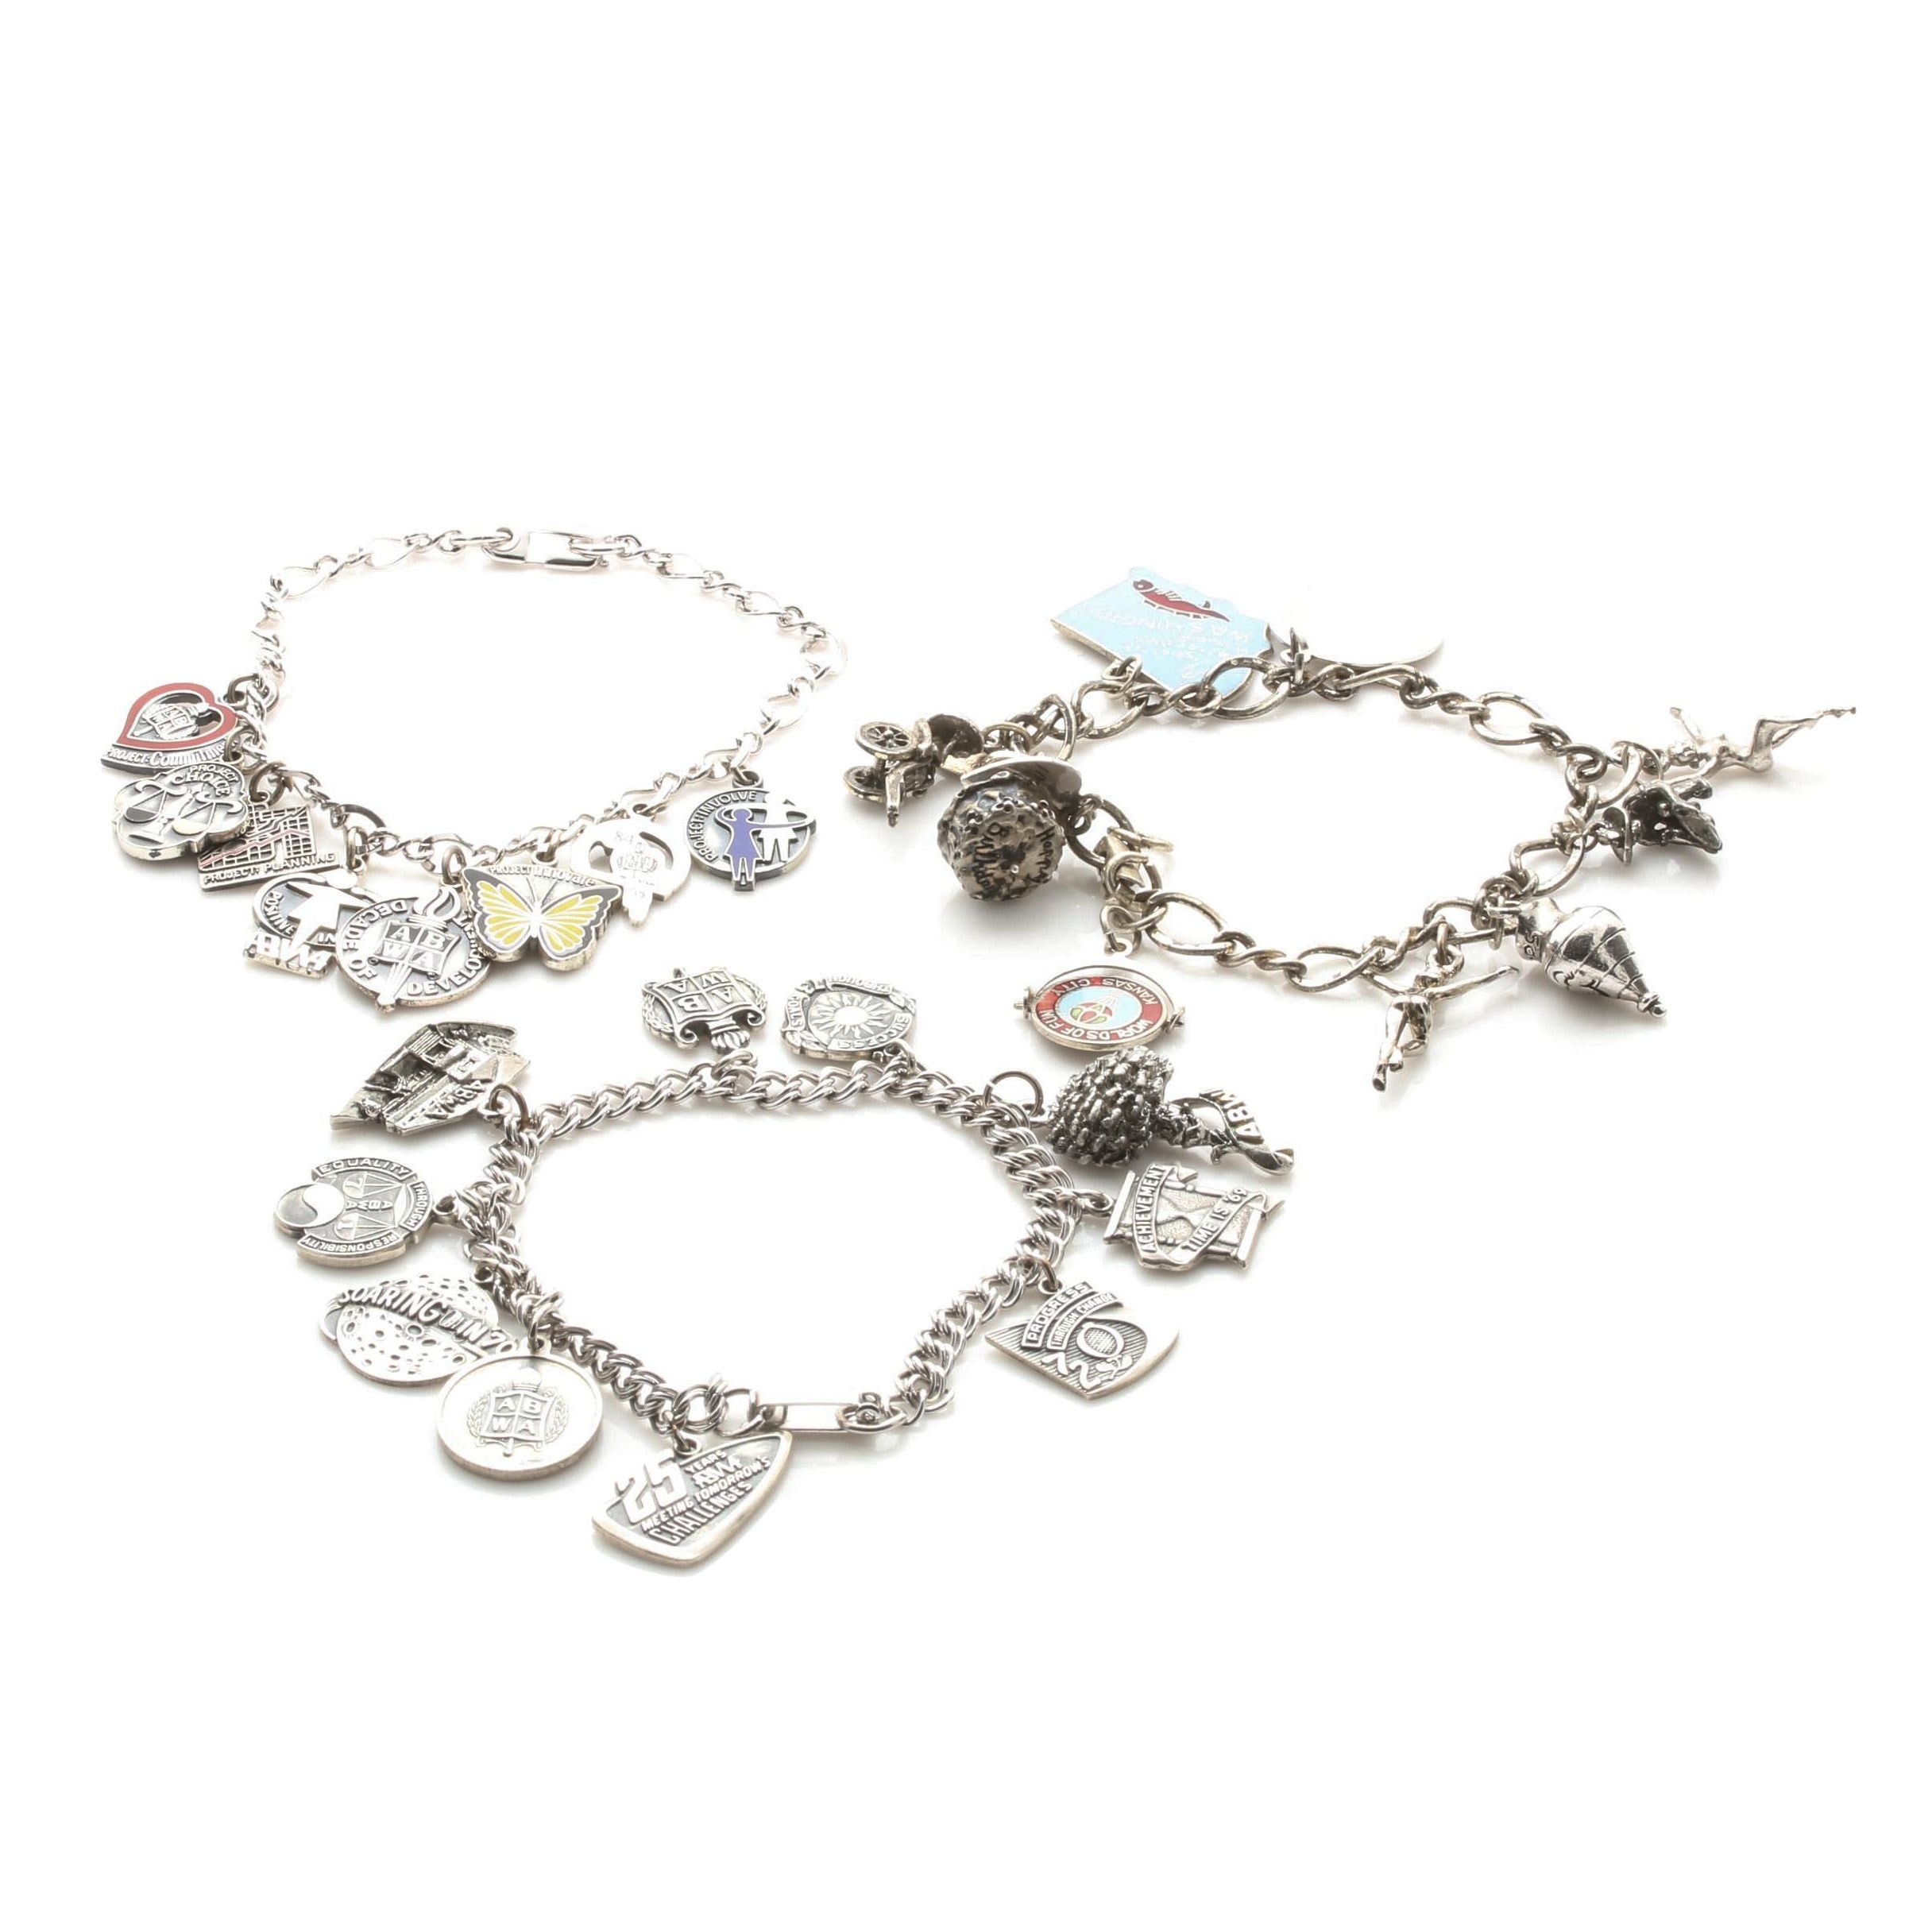 Charm Bracelet Selection Featuring Sterling Silver Charms